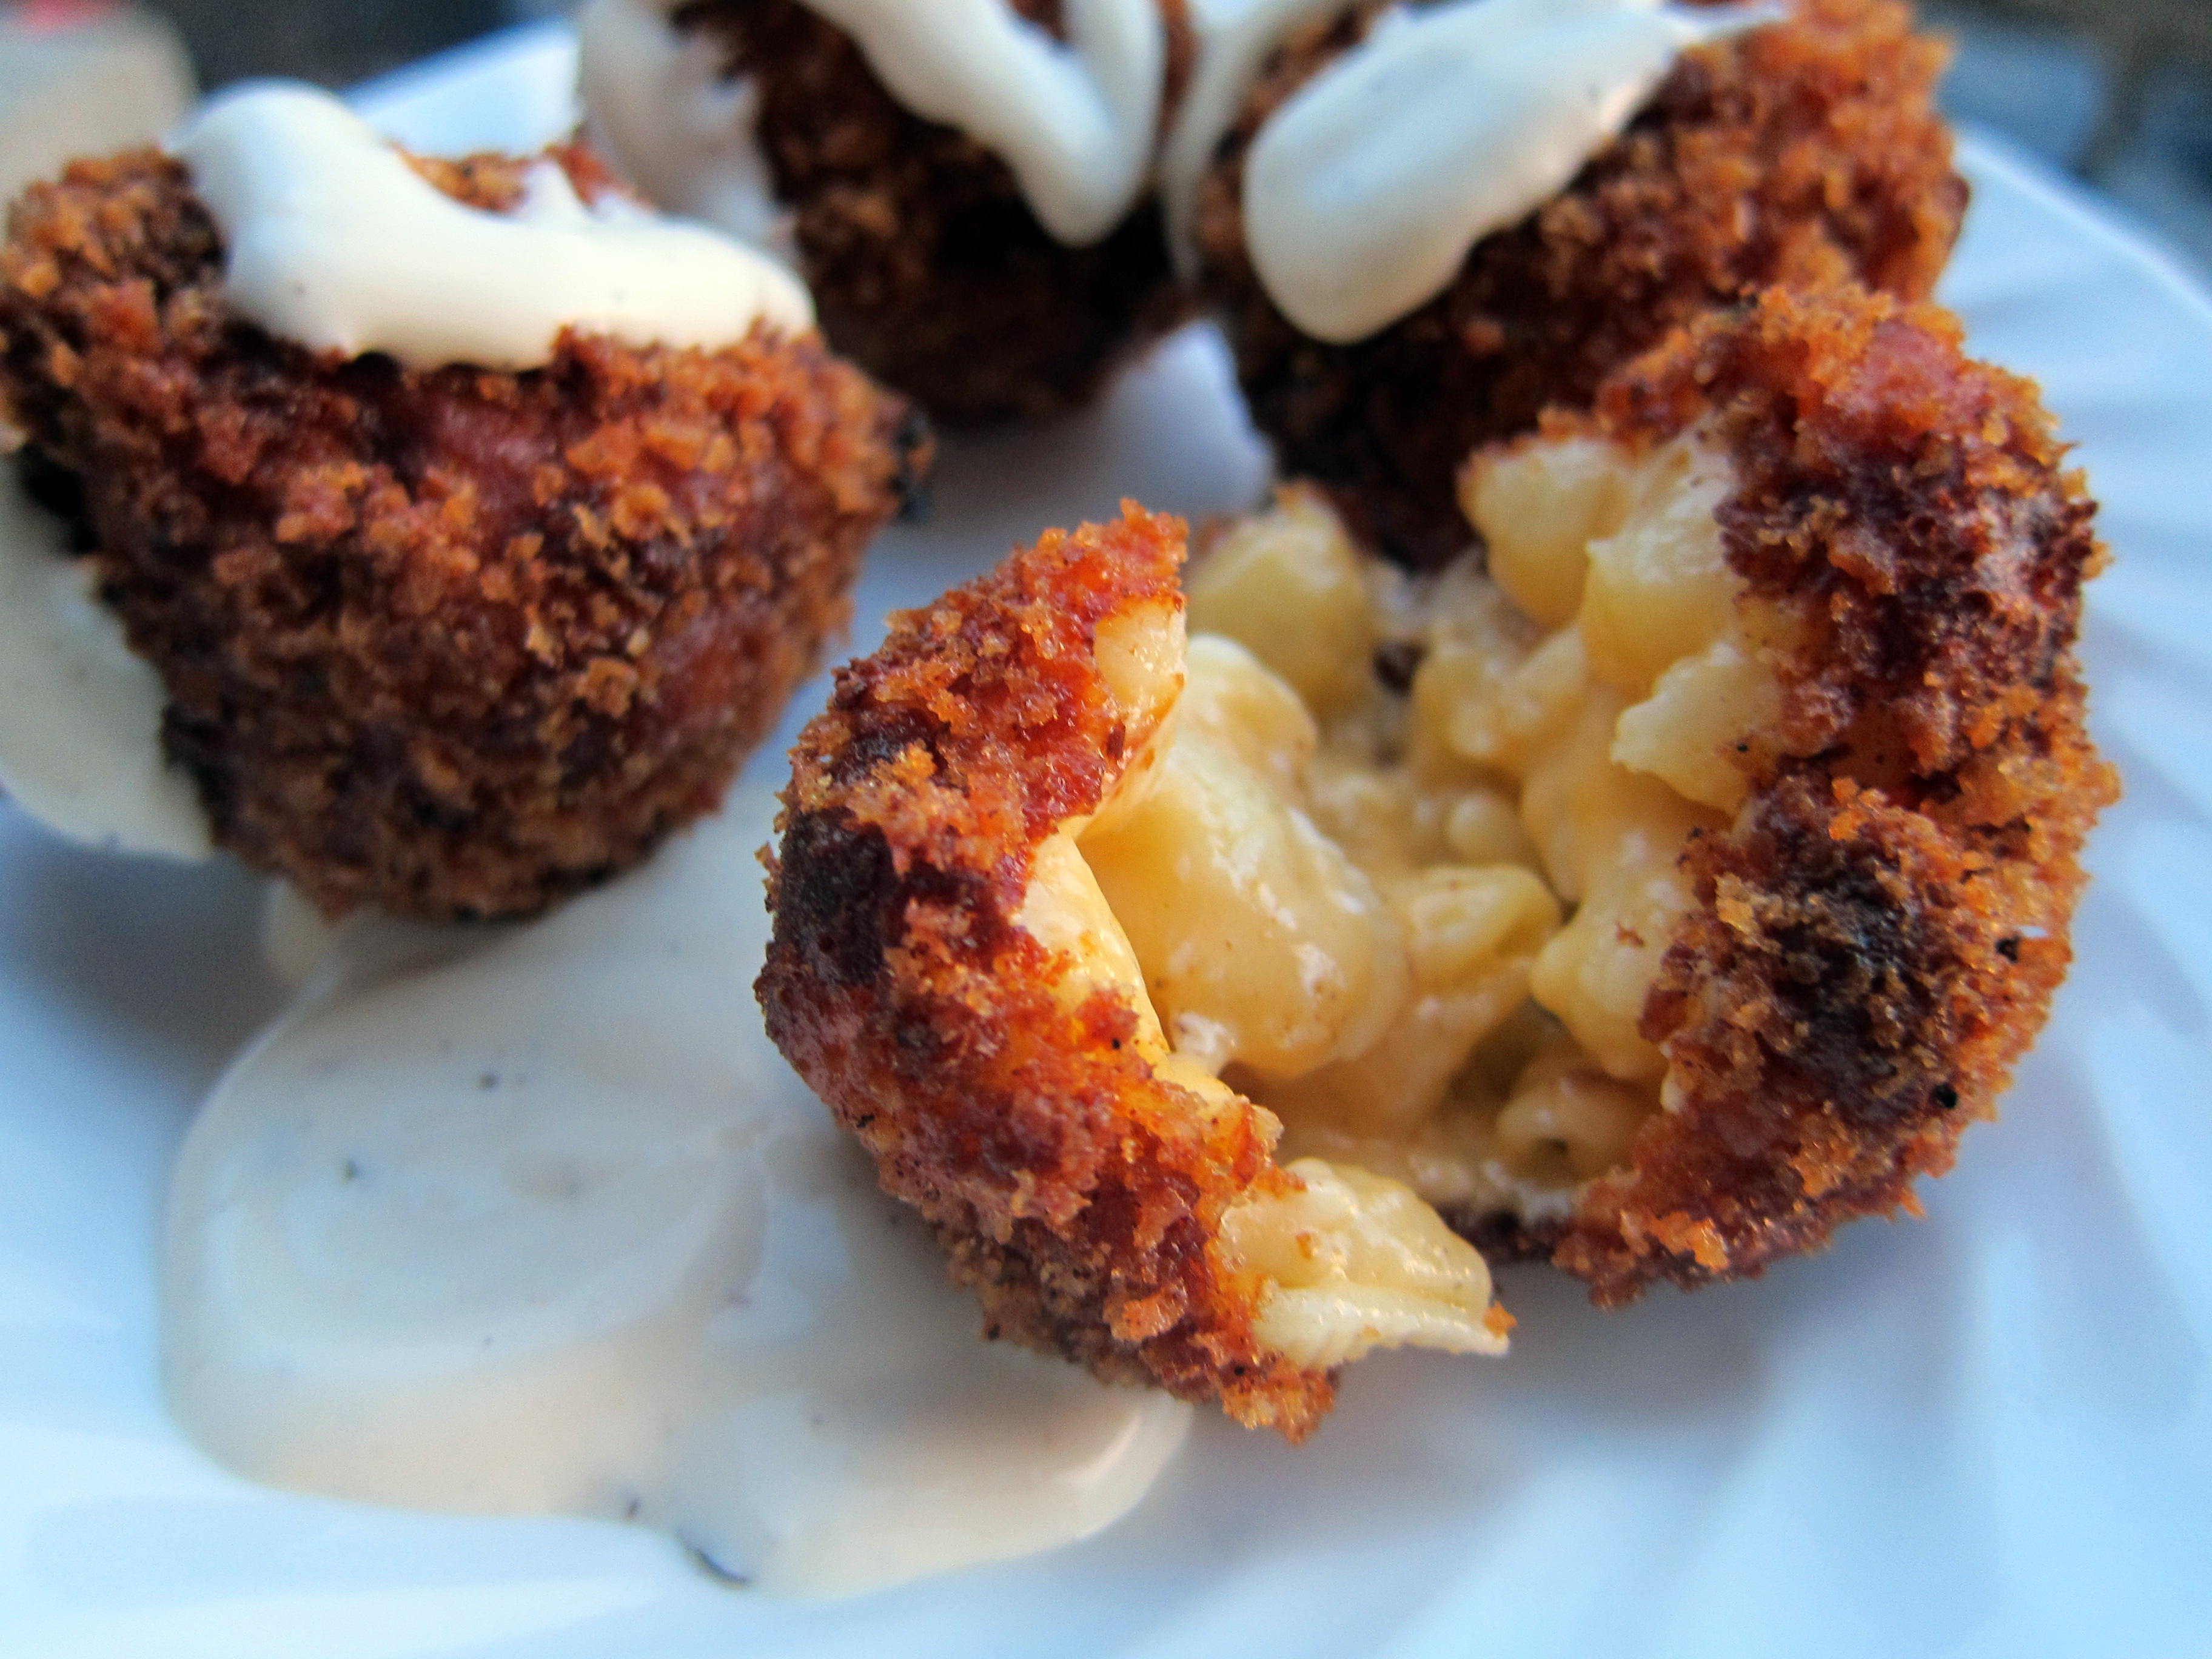 Fried Mac & Cheese Balls Dipped in Ranch Dressing [OC][OS] 3648 x 2736 ...